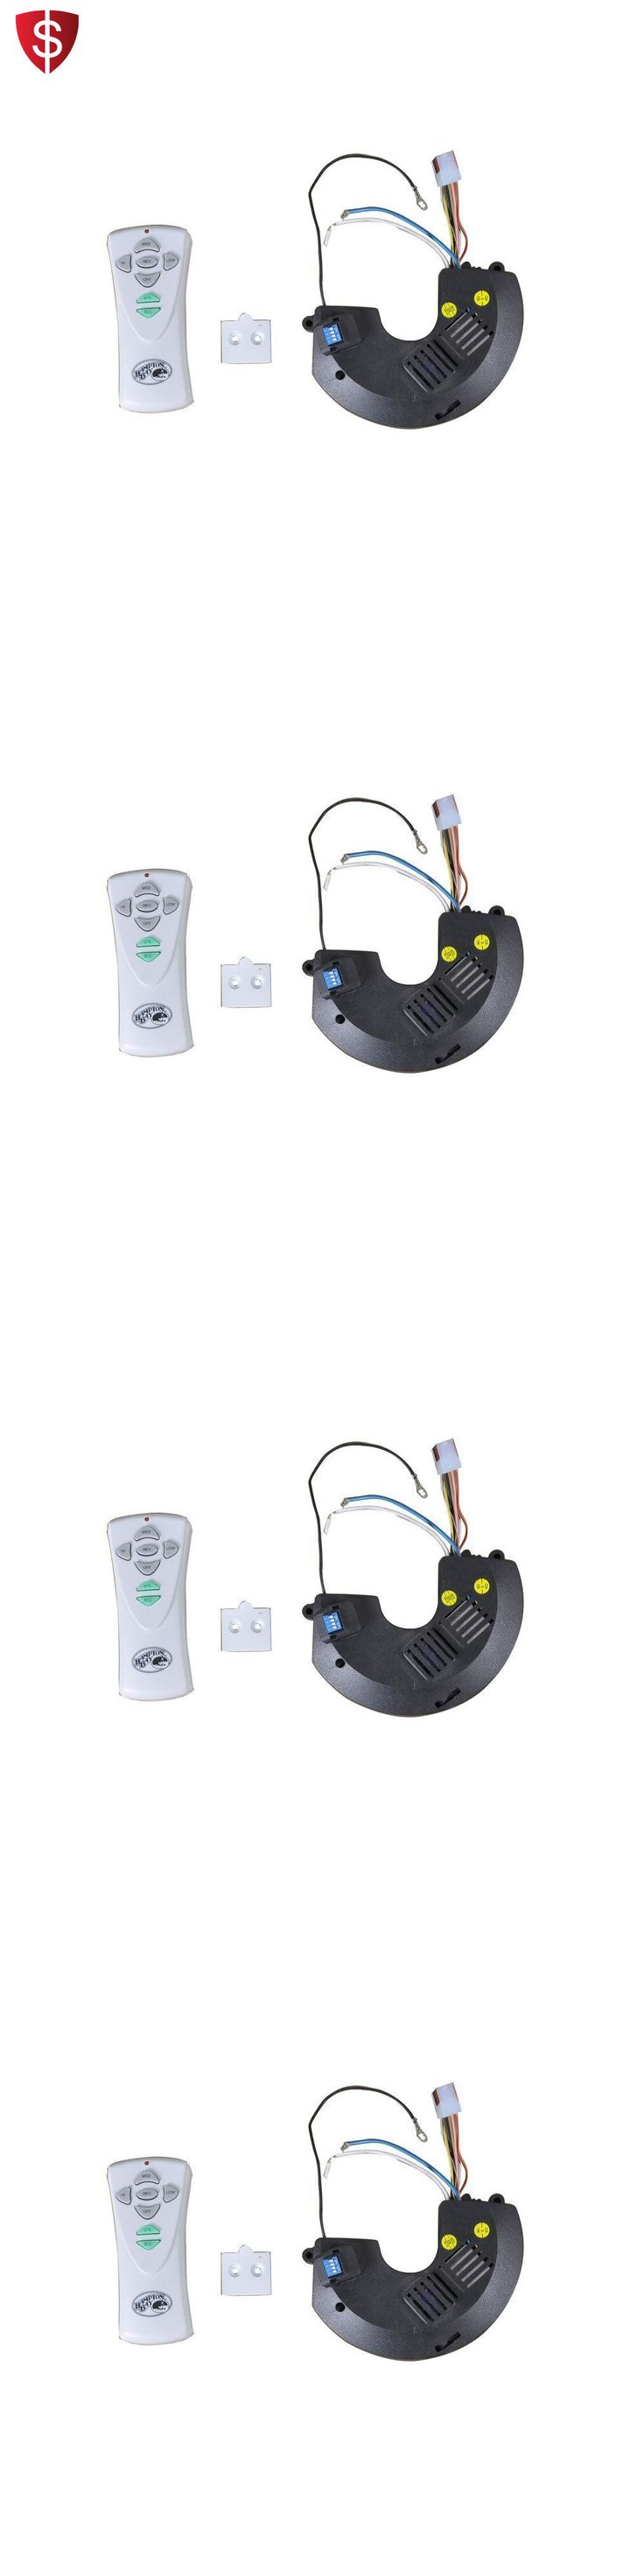 Lighting Parts and Accessories 20705: Wireless Ceiling Fan Remote Dimmer Control Speed Pack Handheld Light Lamp -> BUY IT NOW ONLY: $56.02 on eBay!